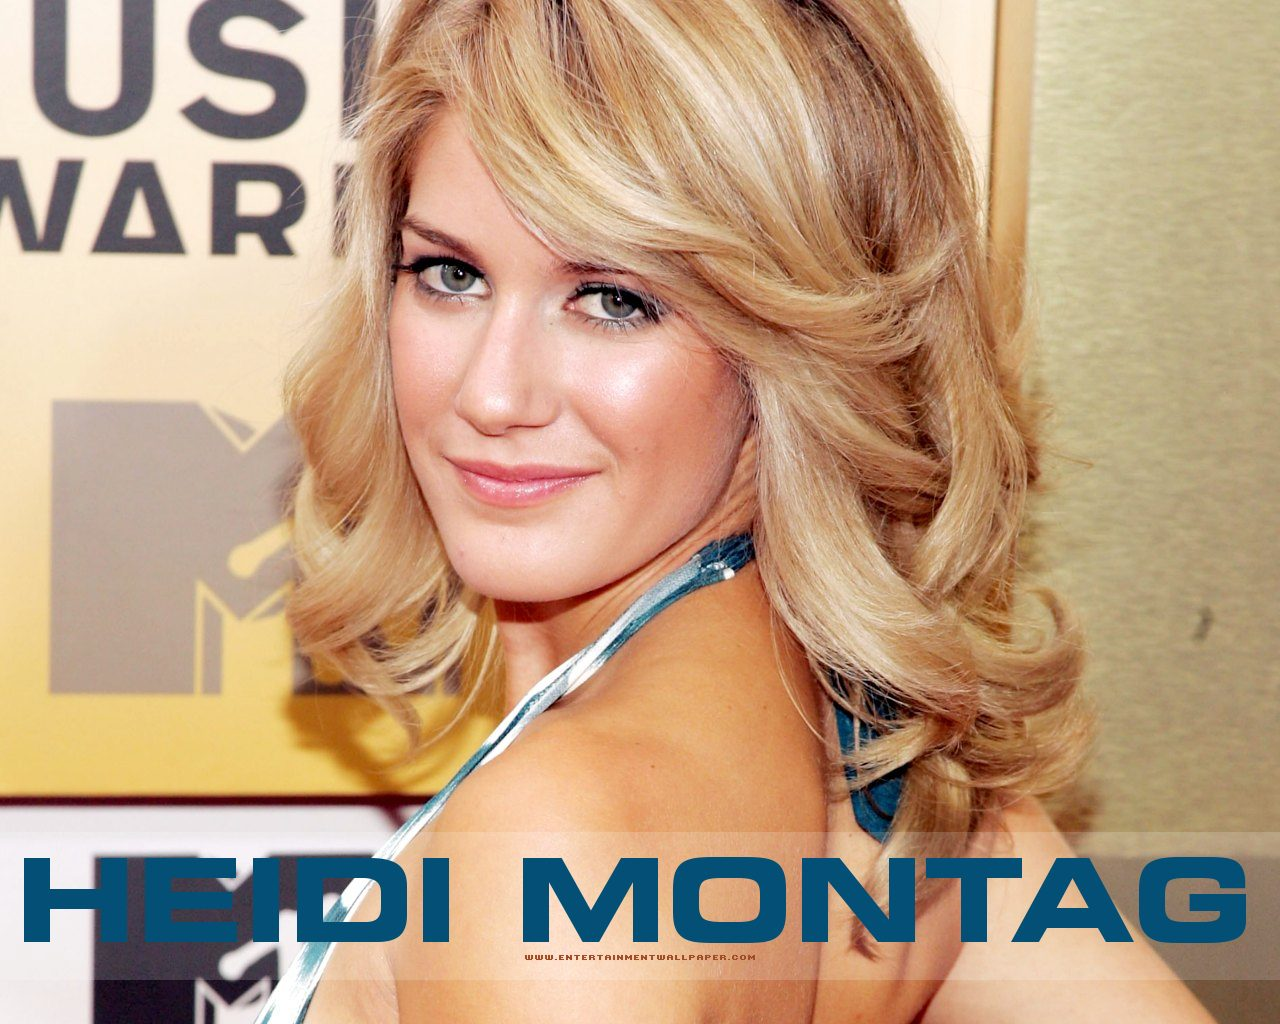 Cute Baby Animal Pictures Wallpapers Lovely Wallpapers Heidi Montag Hd Wallpapers 2012